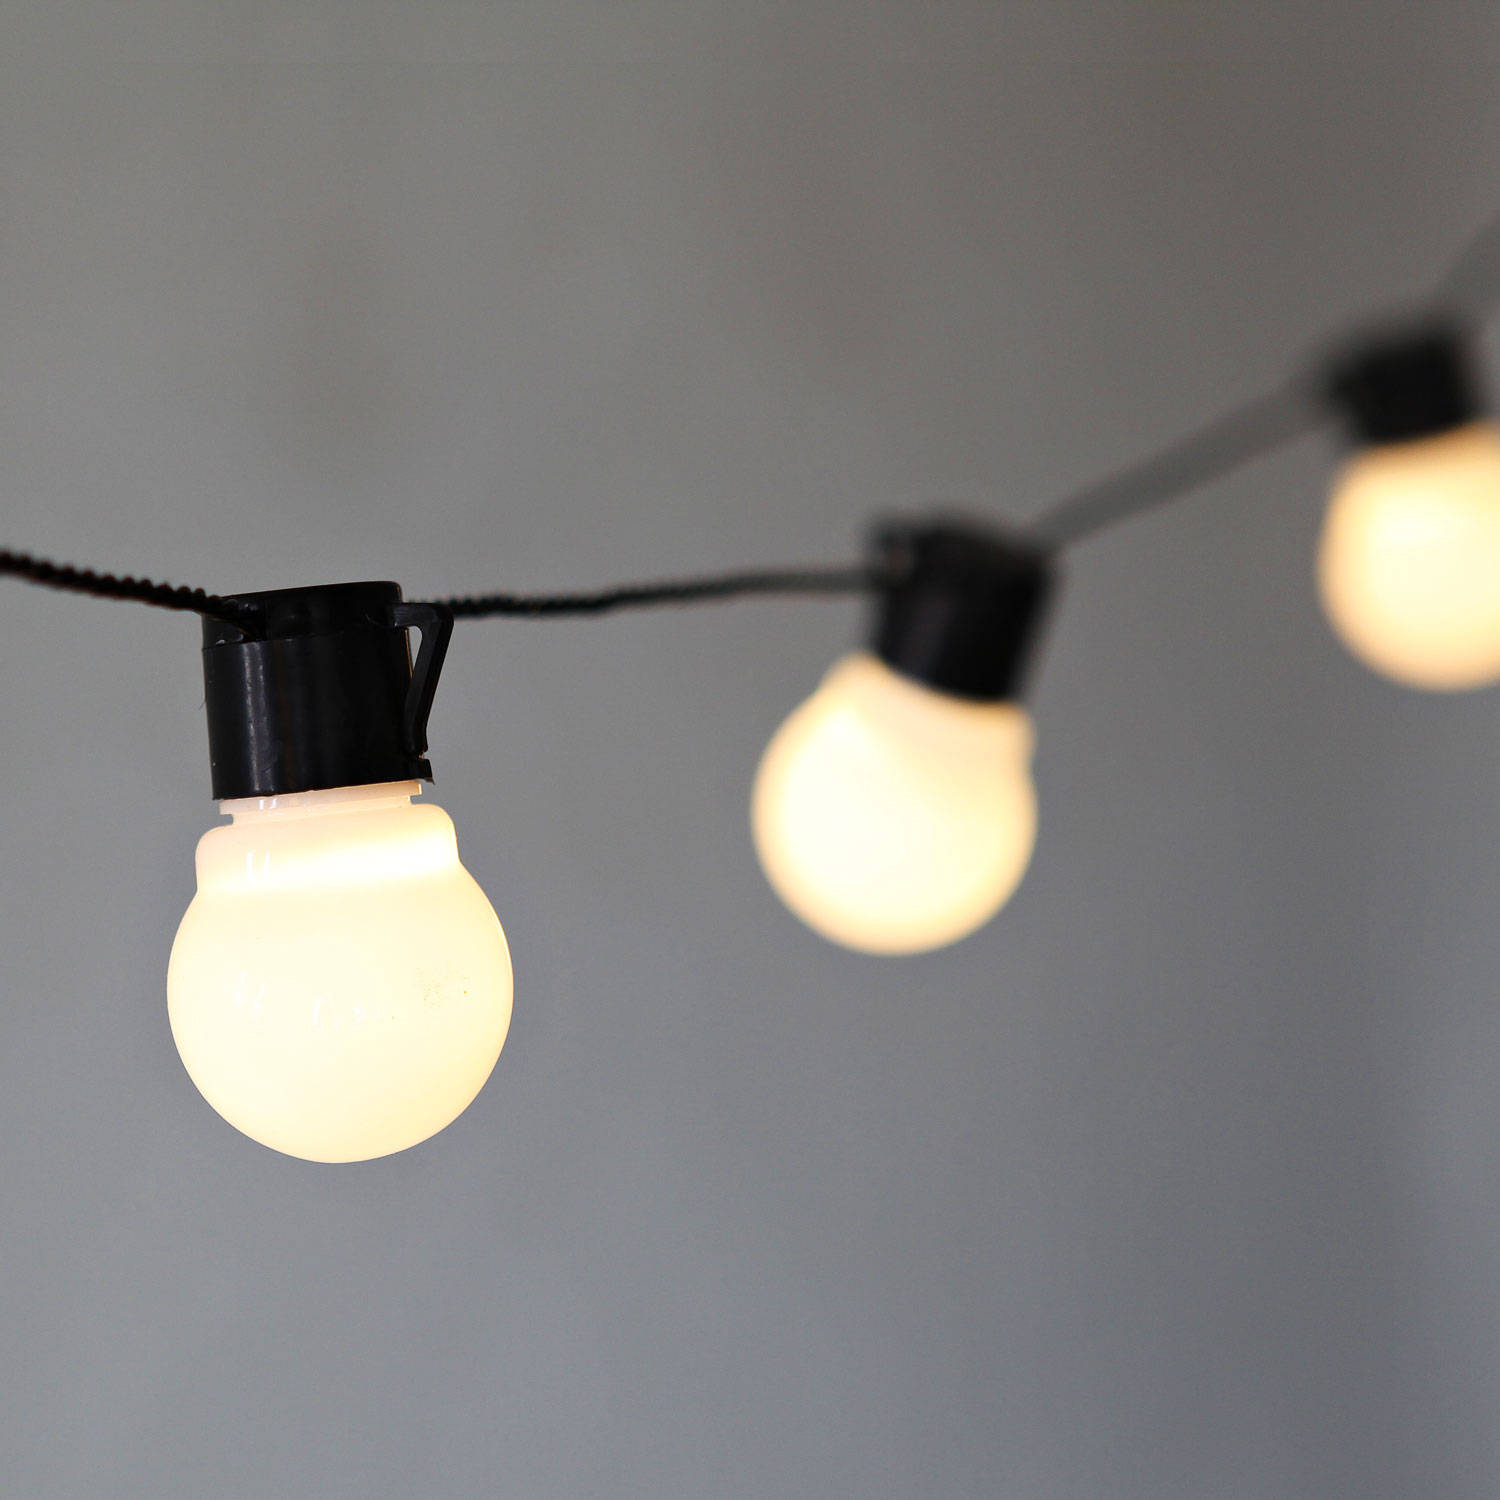 String Lights With No Plug : Lights.com String Lights Decorative String Lights White Globe Connectable Plug-in Festoon ...